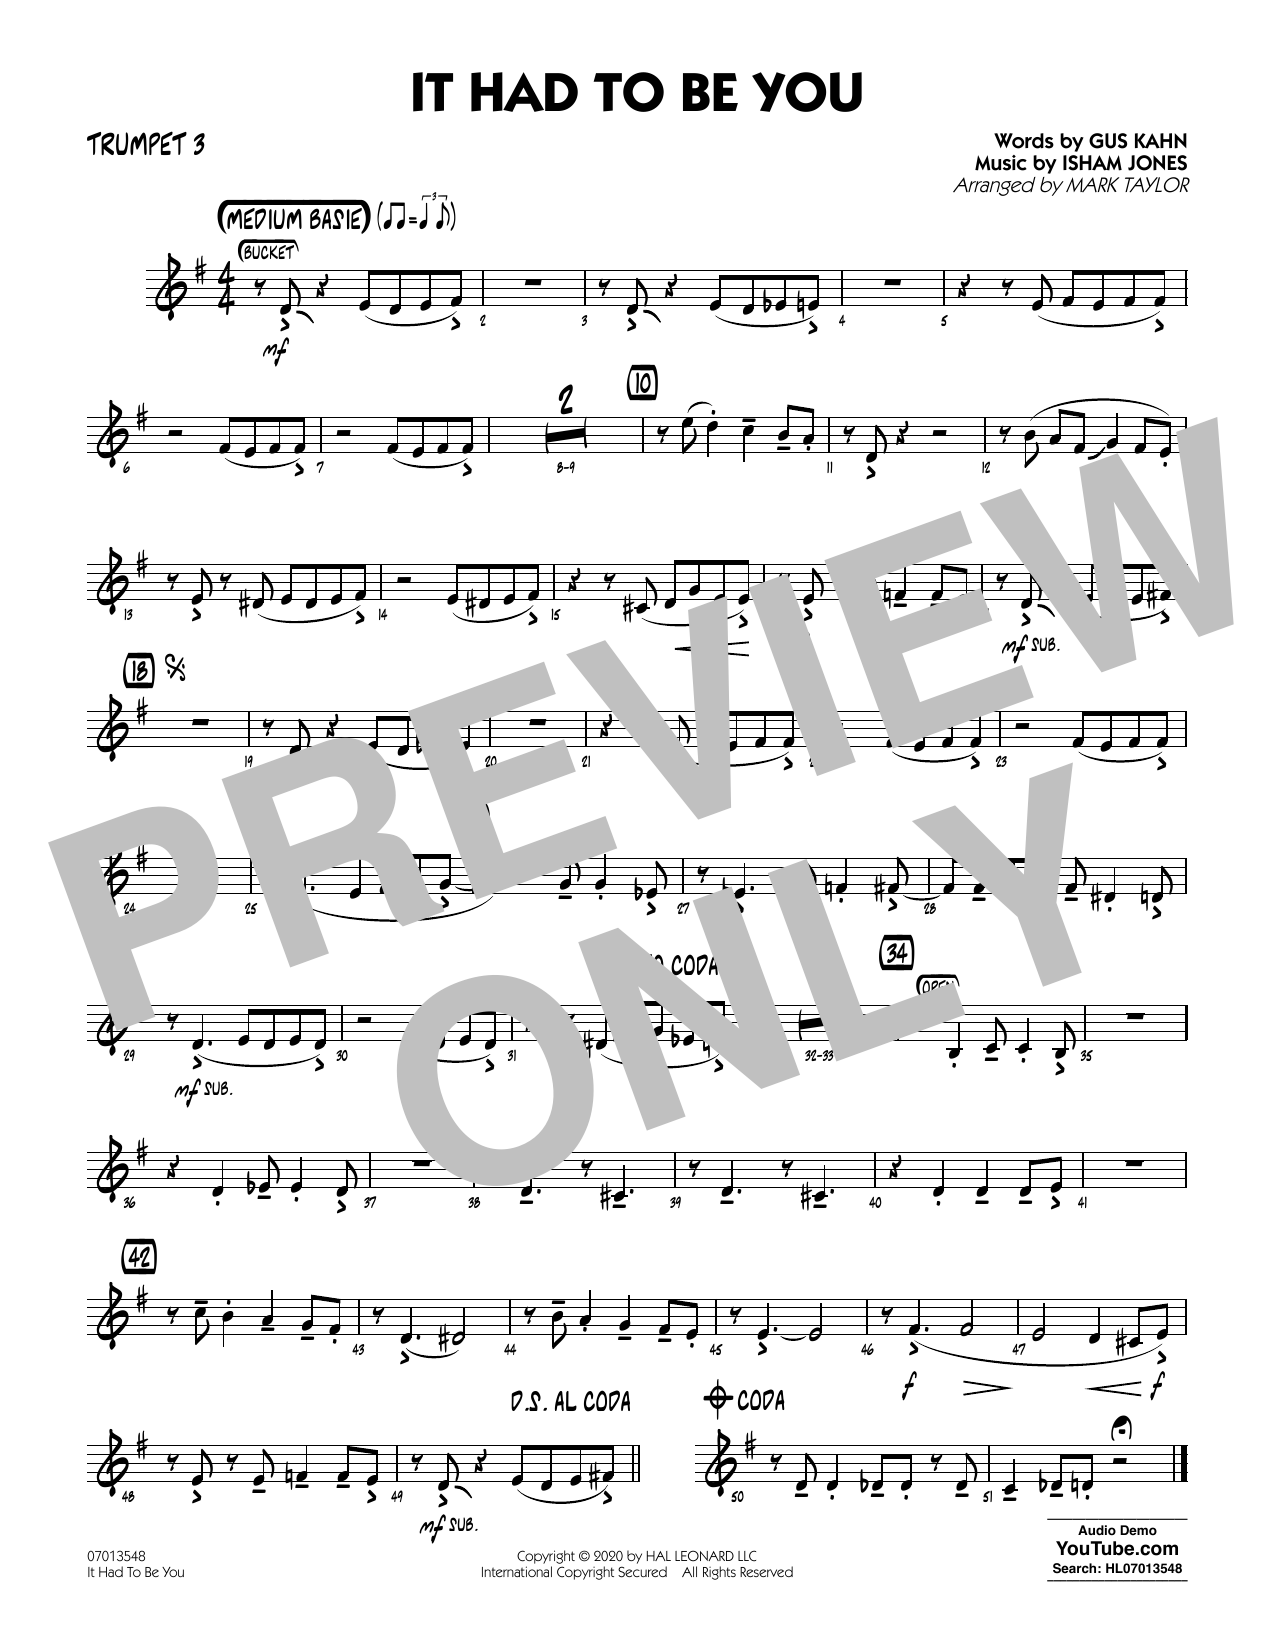 It Had to Be You (arr. Mark Taylor) - Trumpet 3 Sheet Music